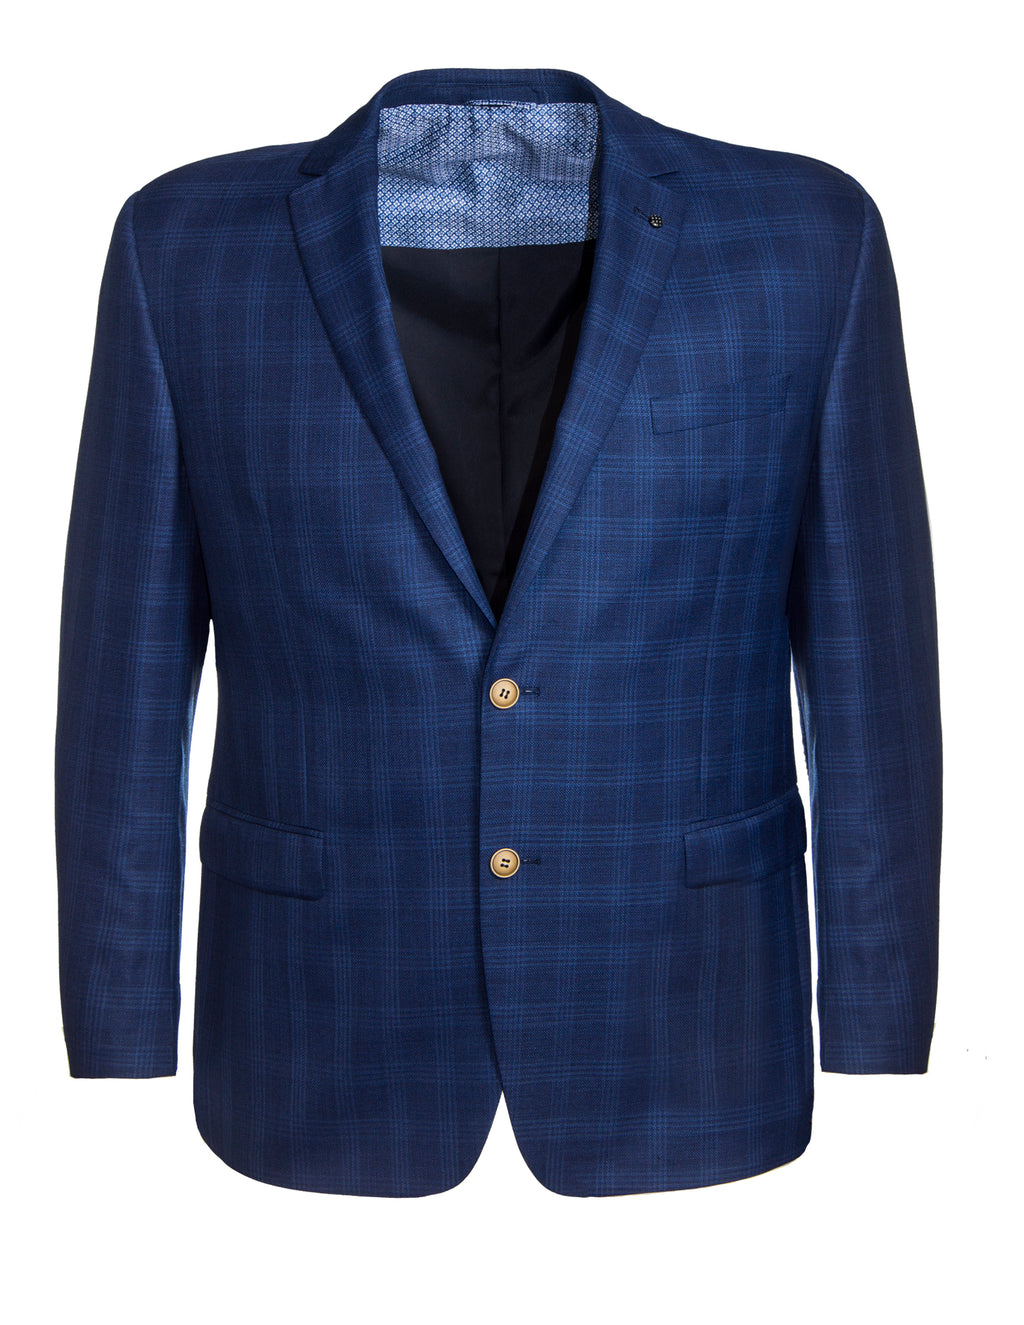 Daniel Hechter Blue Check S17B333M Wool Sports Coat